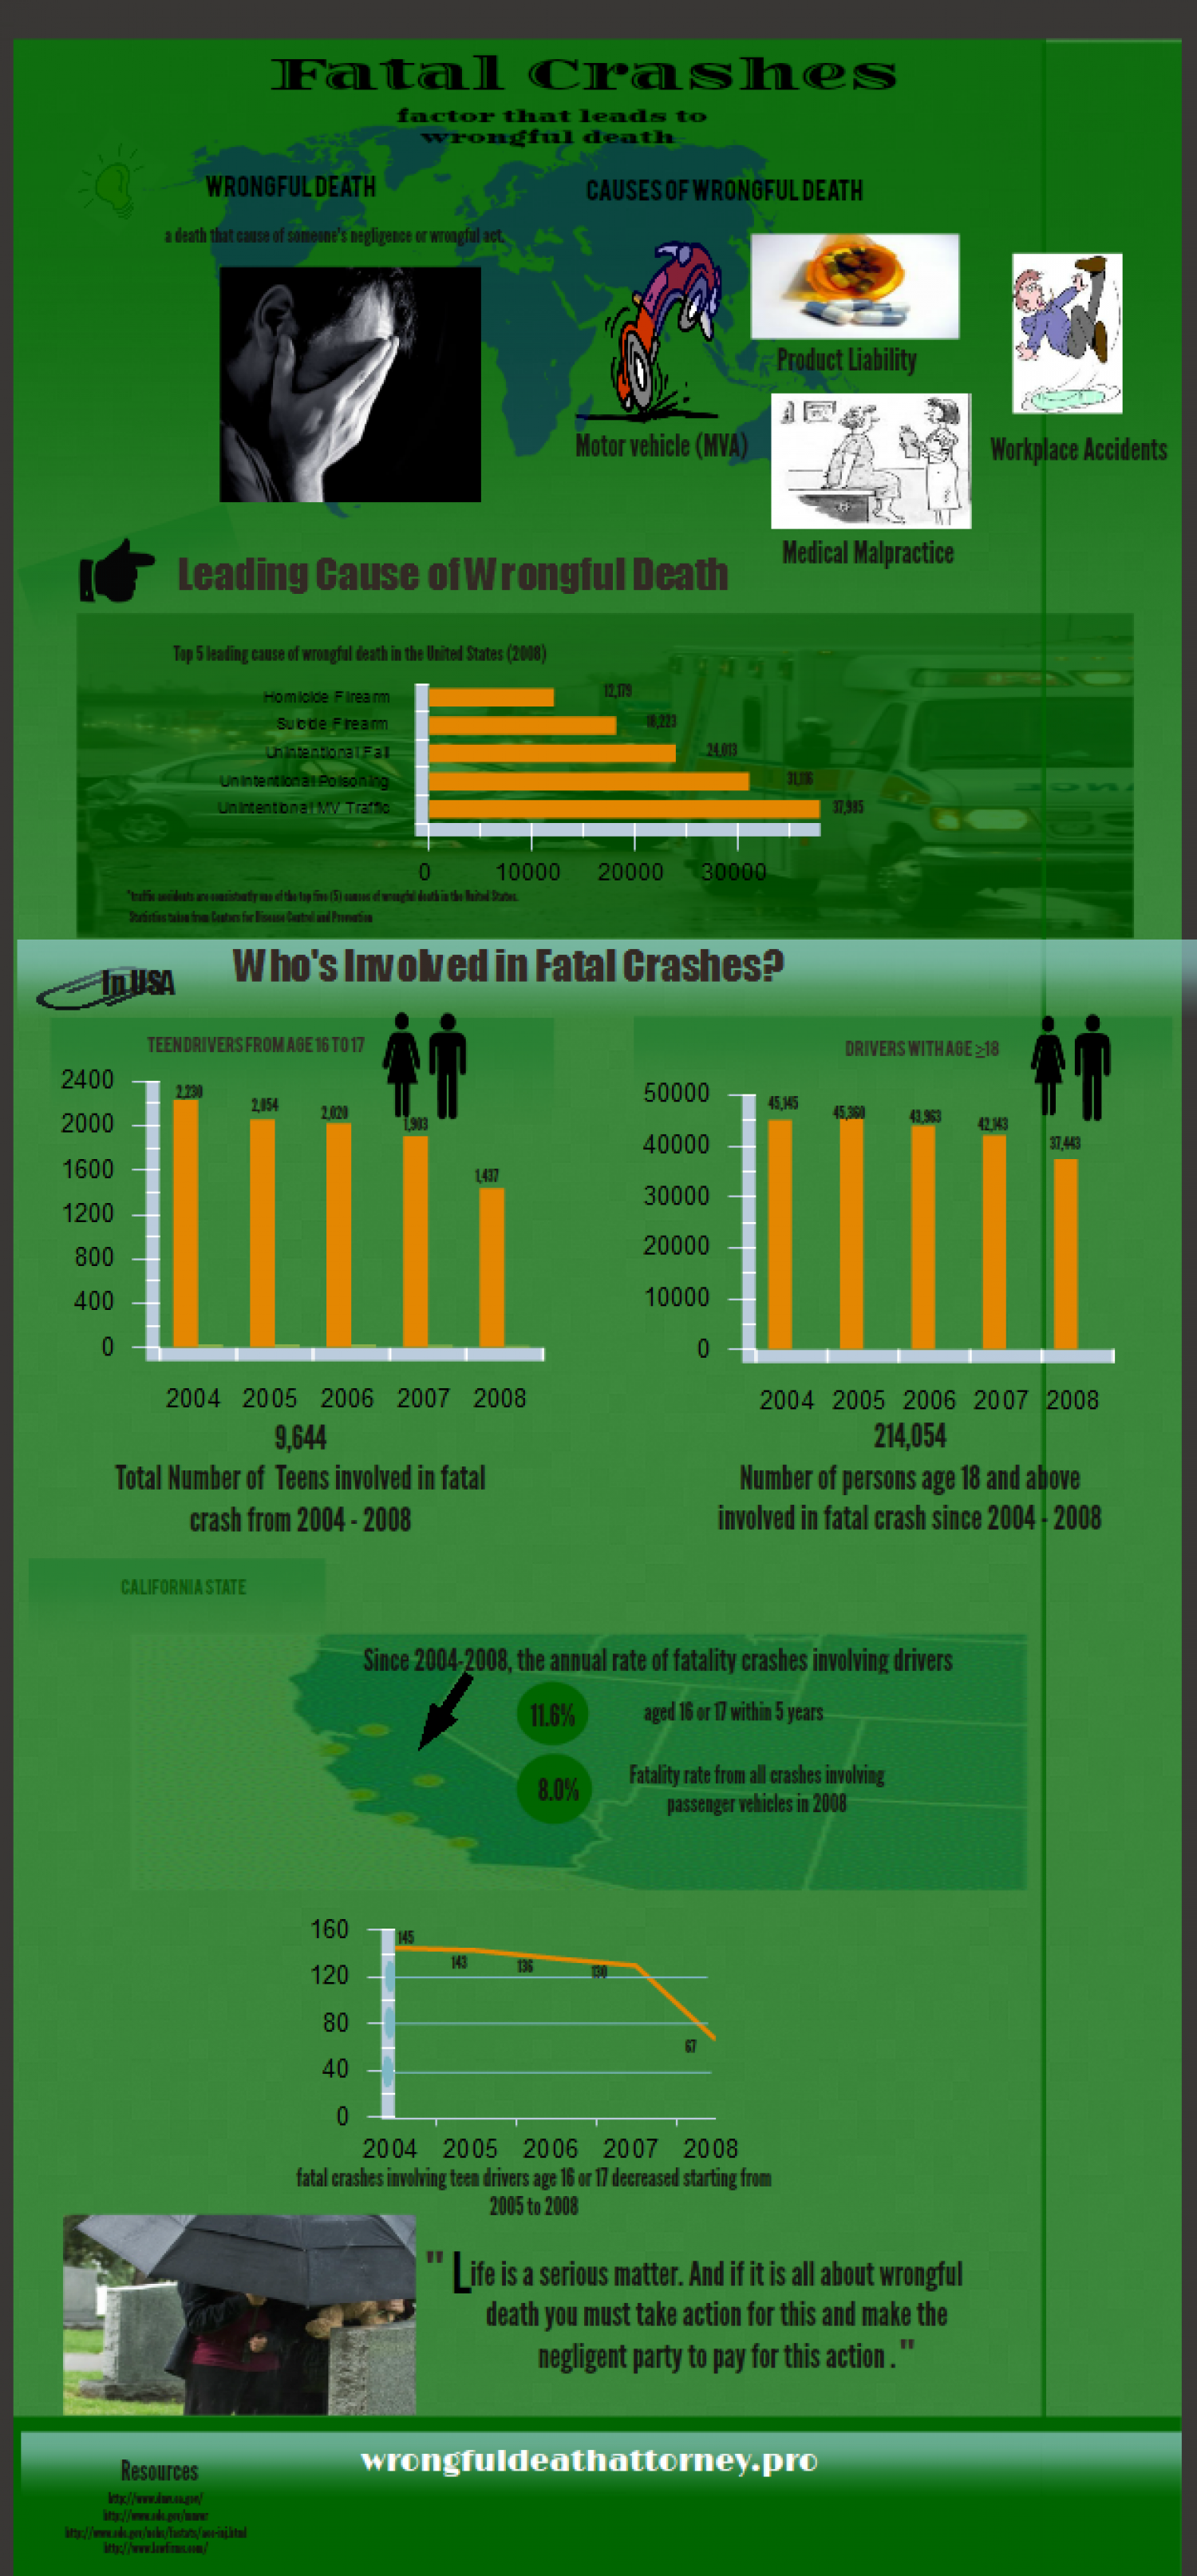 Fatal Crashes - Leading Cause of Wrongful Death Infographic